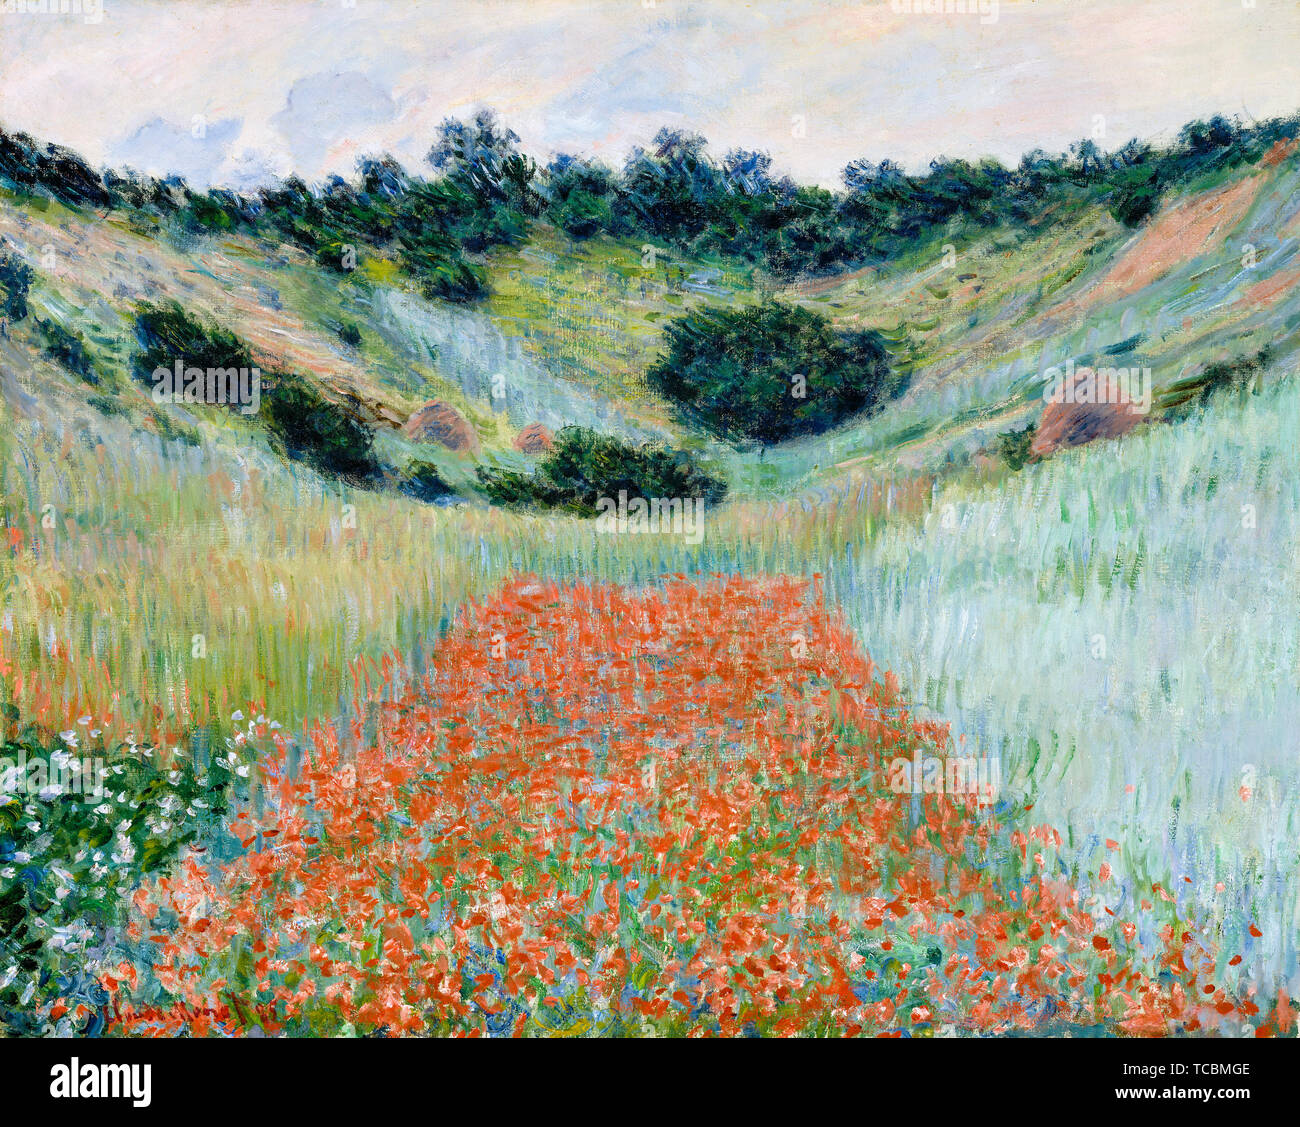 Monet Landscape High Resolution Stock Photography And Images Alamy